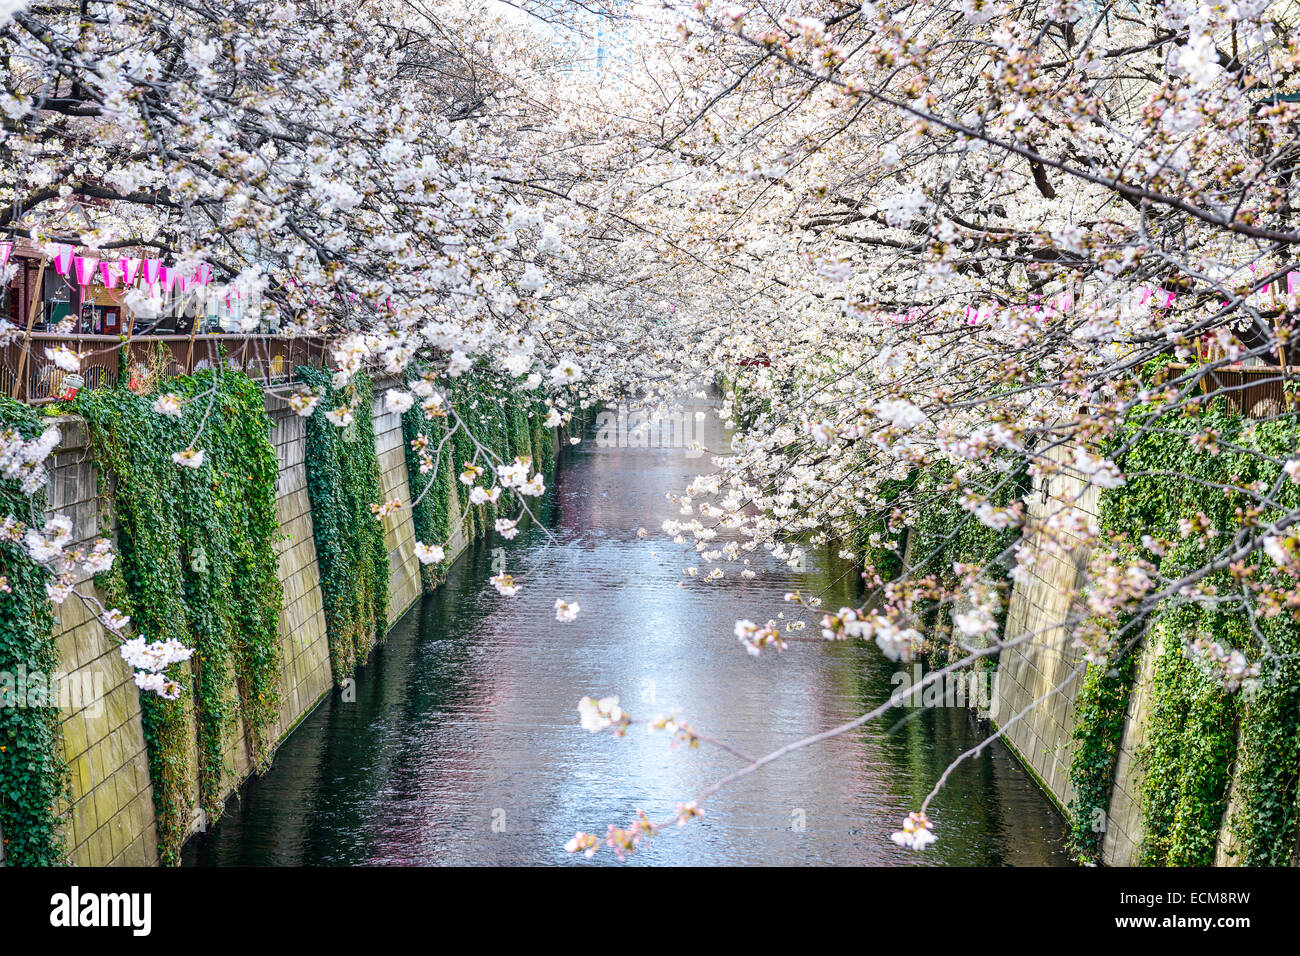 tokyo, Japan at Meguro canal in the spring. - Stock Image